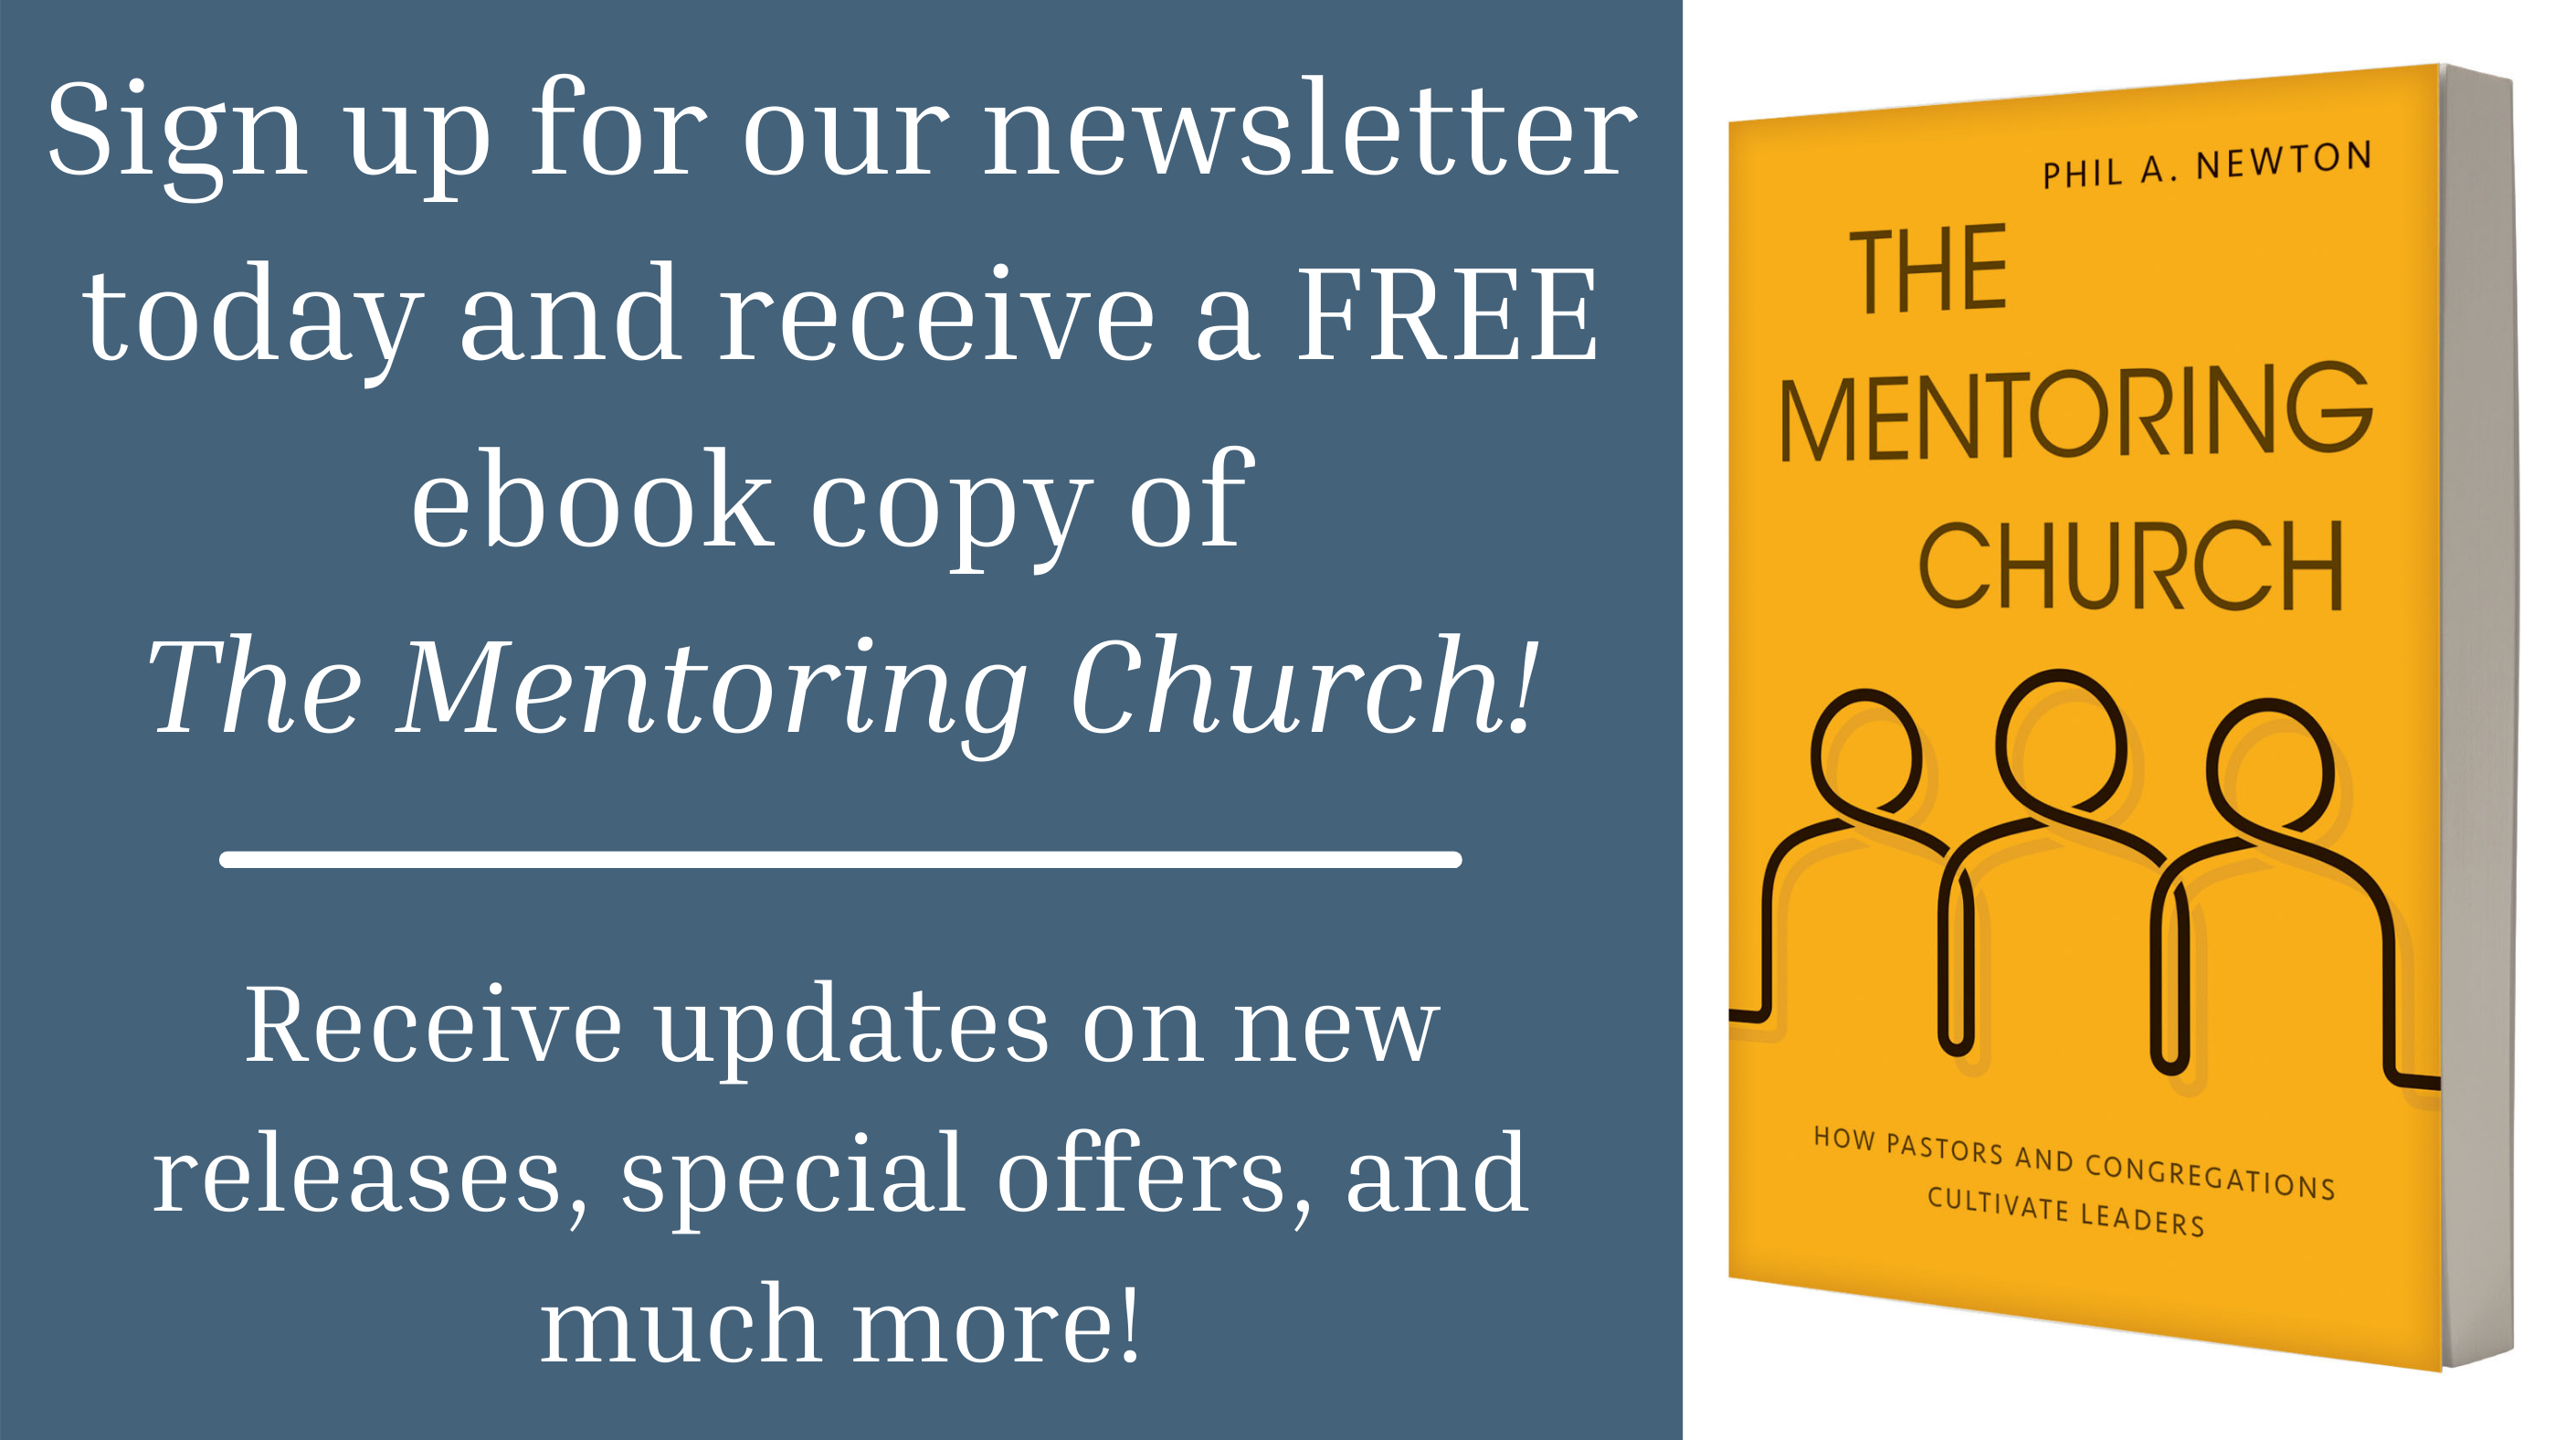 Sign up for our newsletter today and receive a FREE ebook copy of  The Mentoring Church!  Receive updates on new releases, special offers, and much more!